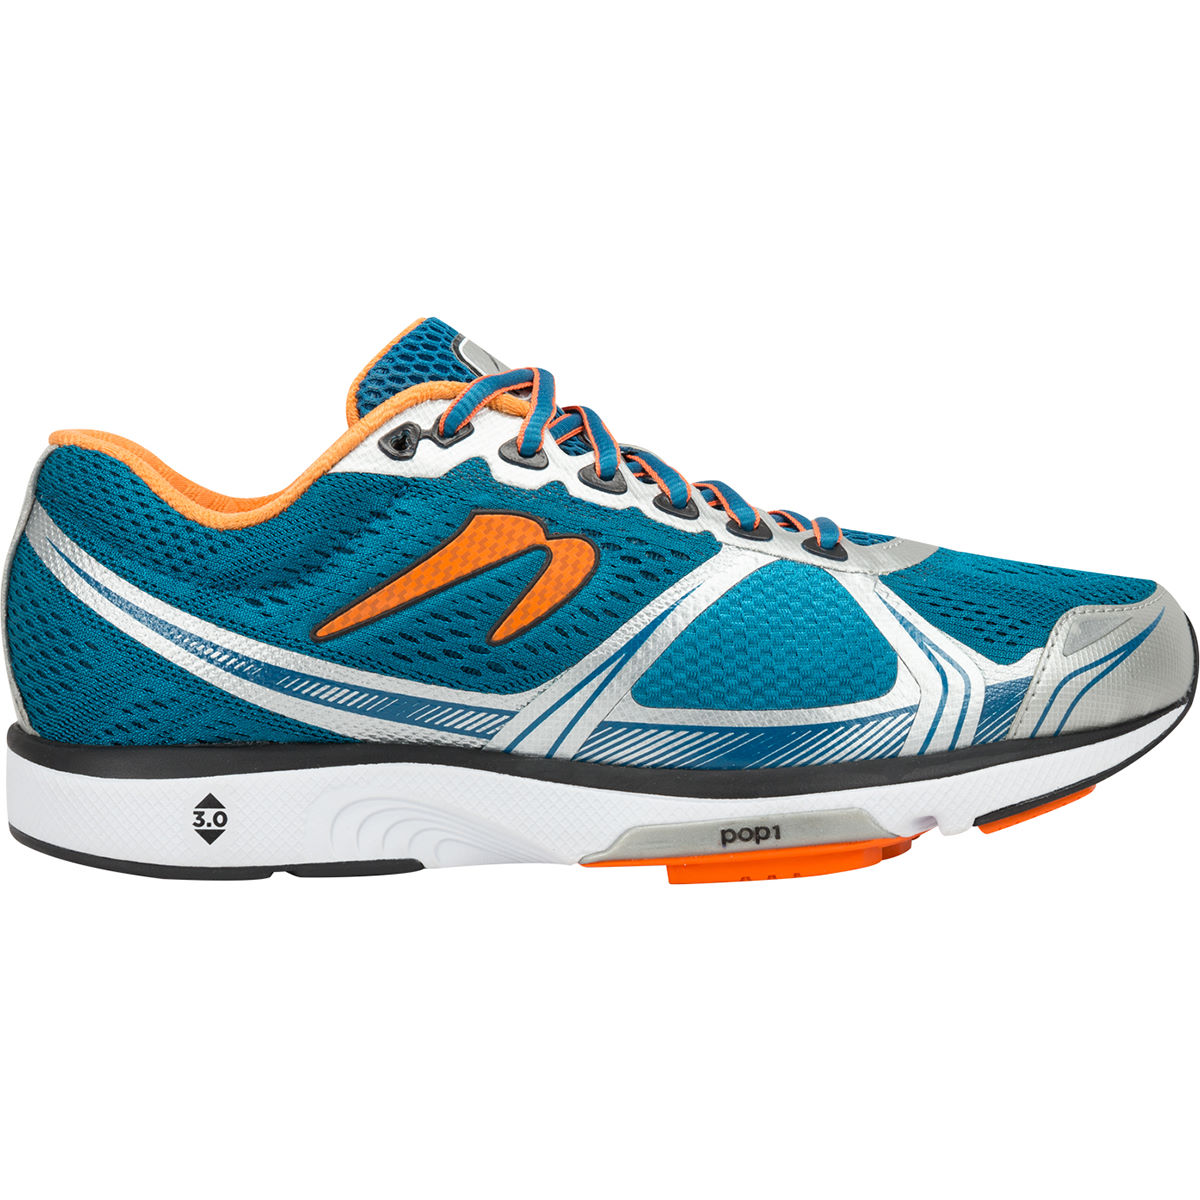 Chaussures Newton Running Shoes Motion VI - 8 UK Bleu